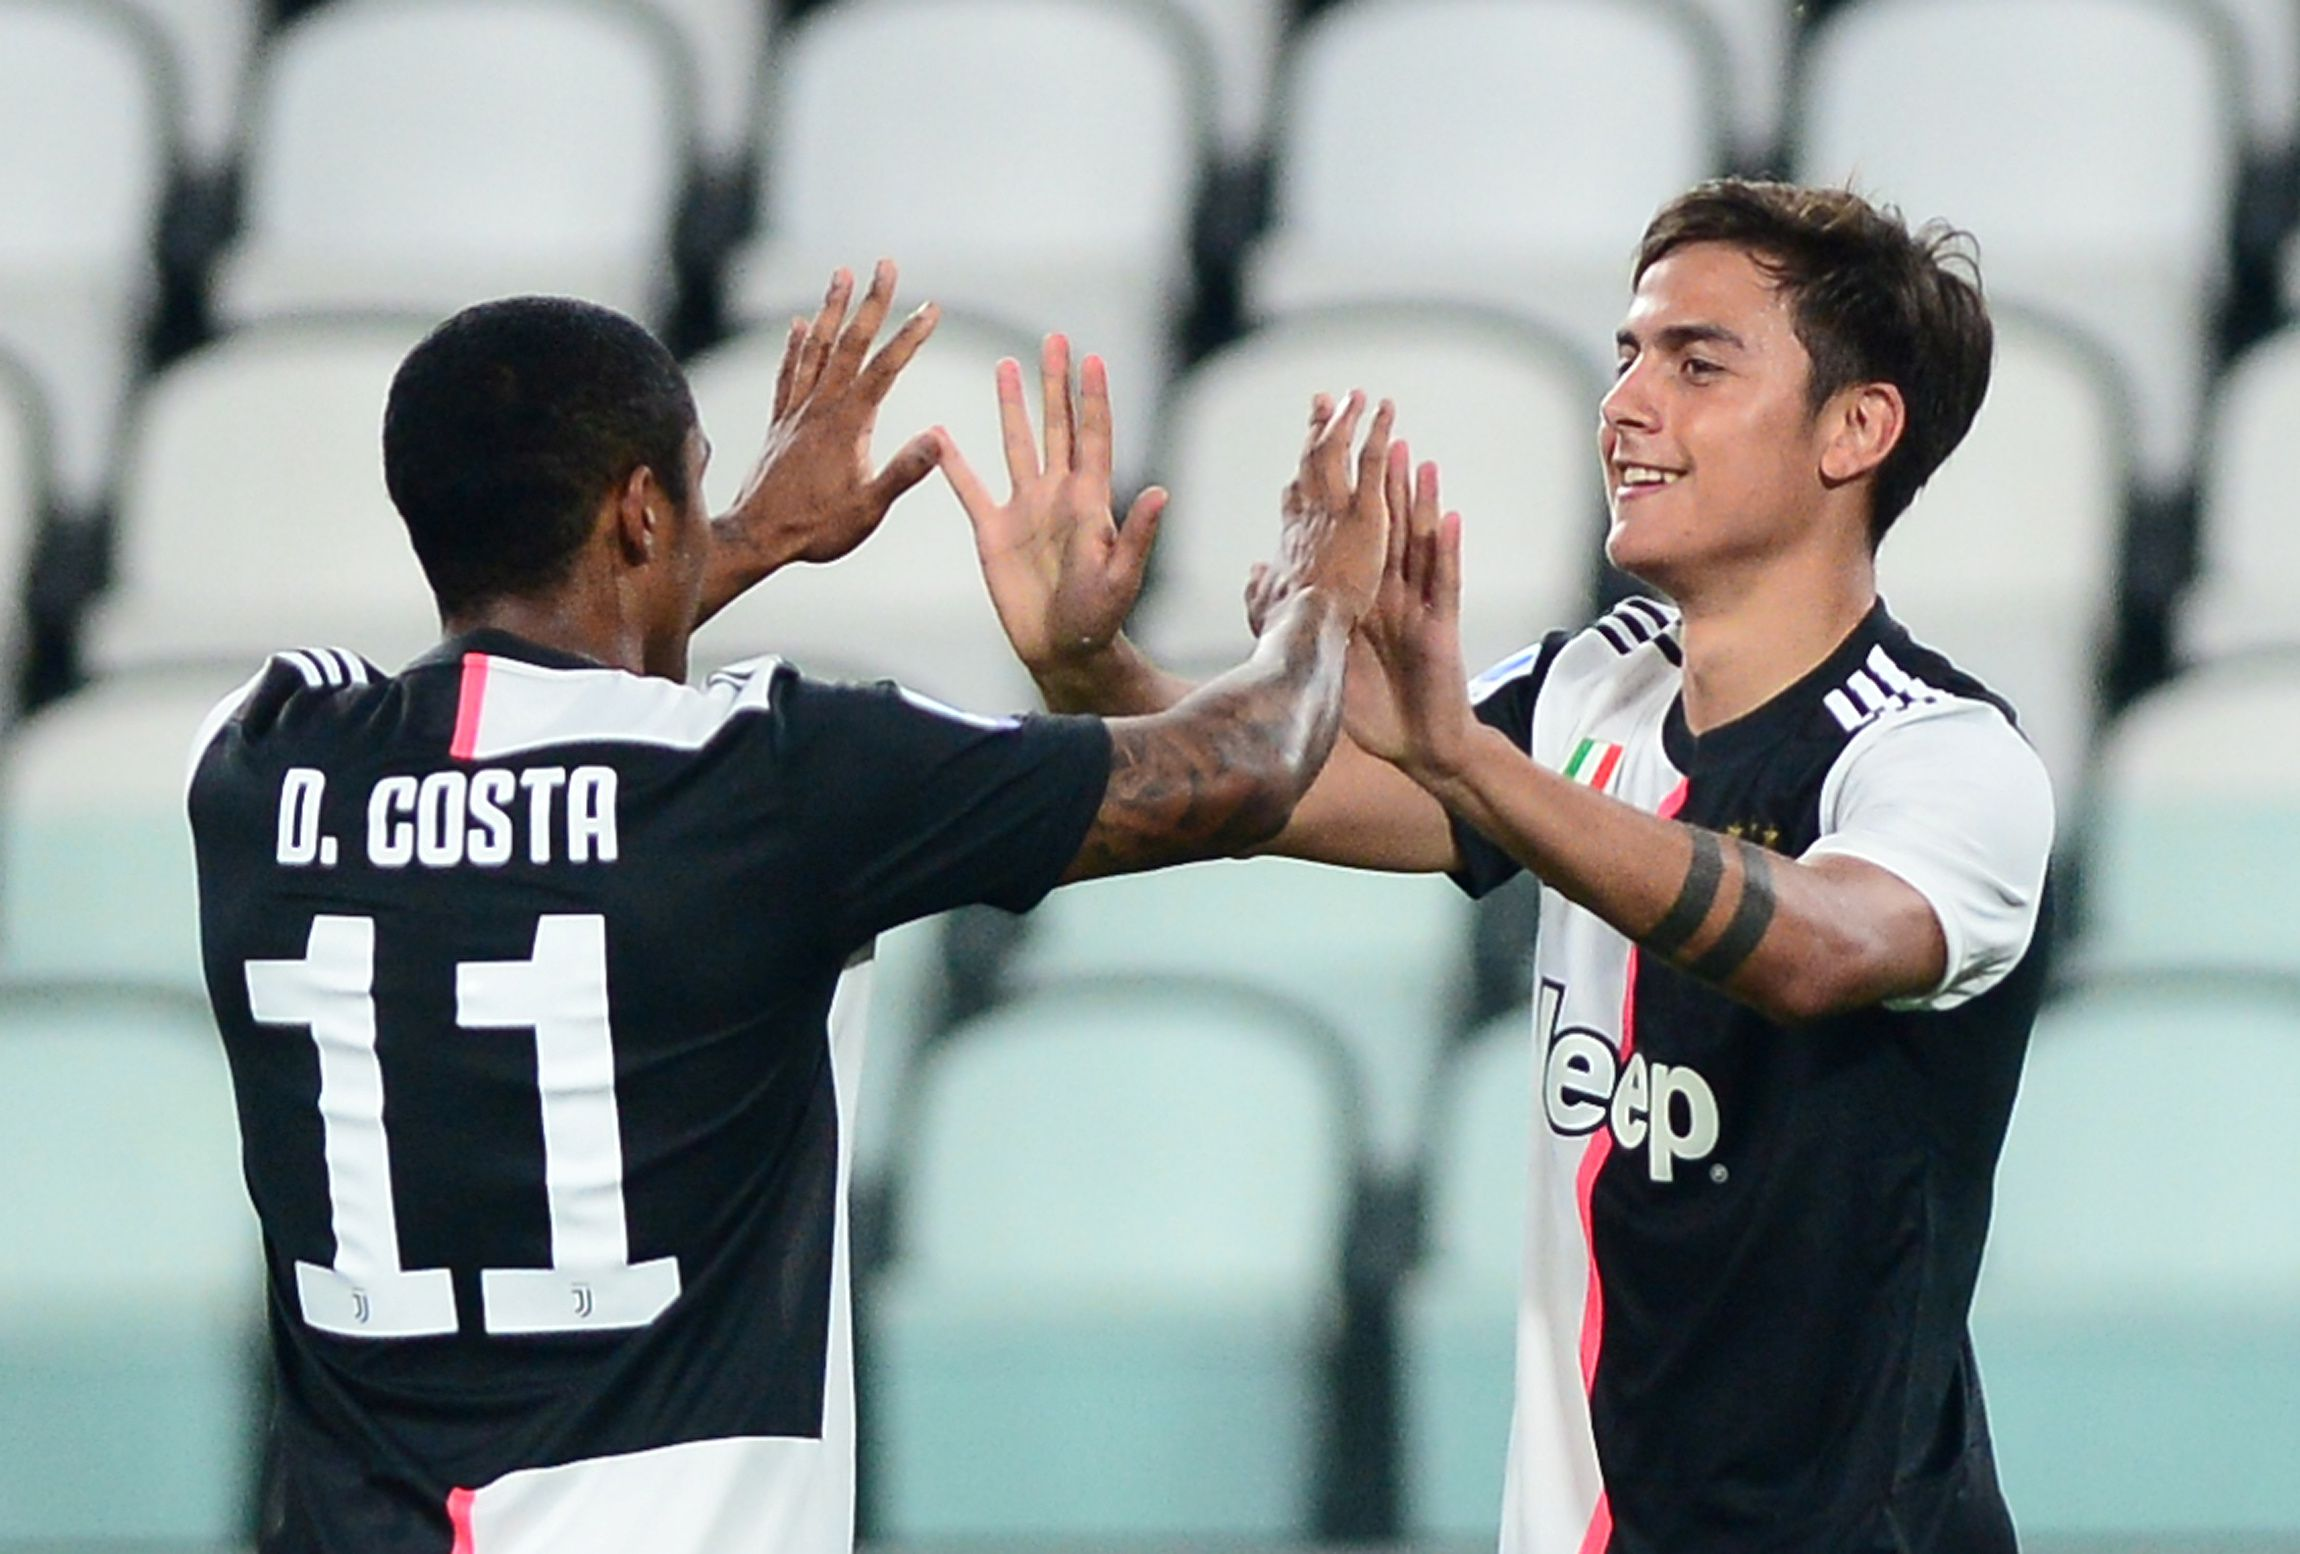 Soccer Football - Serie A - Juventus v Lecce - Allianz Stadium, Turin, Italy - June 26, 2020 Juventus' Paulo Dybala celebrates scoring their first goal with Douglas Costa, as play resumes behind closed doors following the outbreak of the coronavirus disease (COVID-19) REUTERS/Massimo Pinca